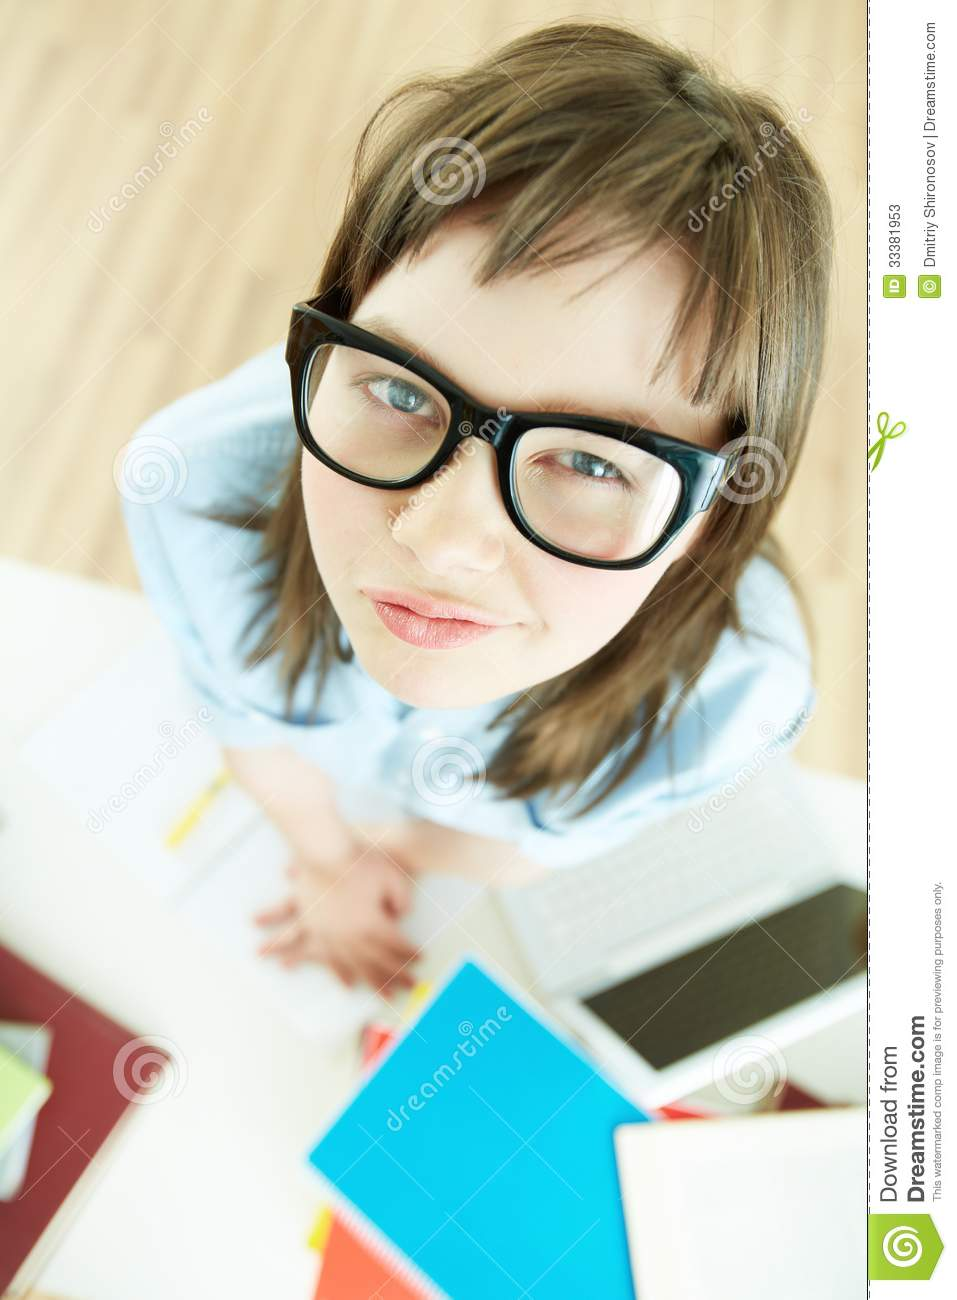 Funny Pupil Stock Photos - Image 33381953-7930